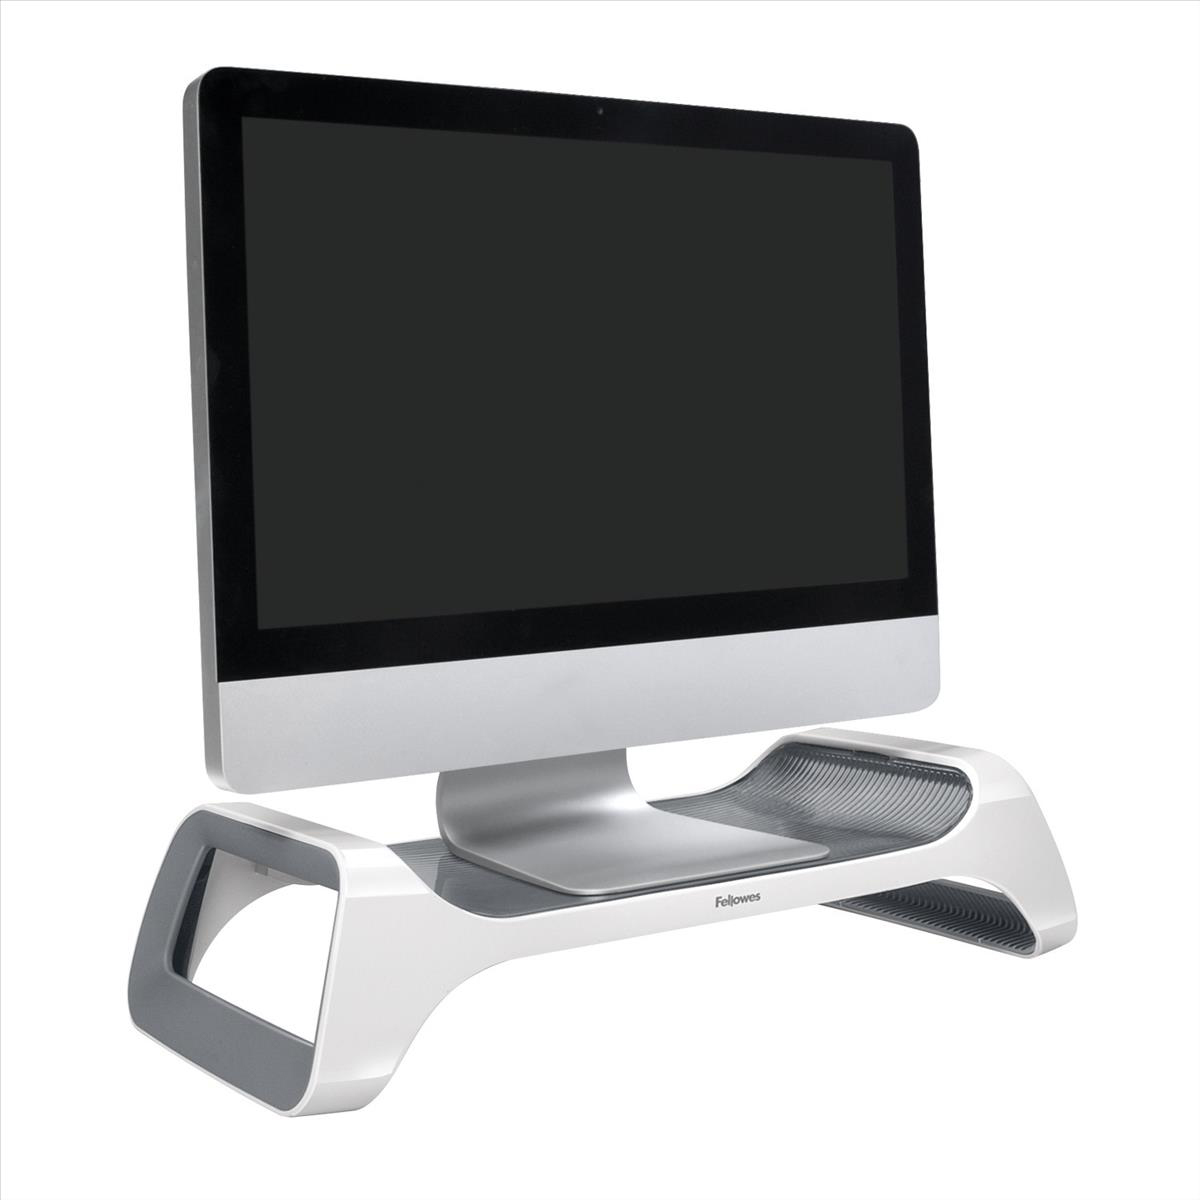 Fellowes I-SPIRE Monitor Lift Ref 9311102